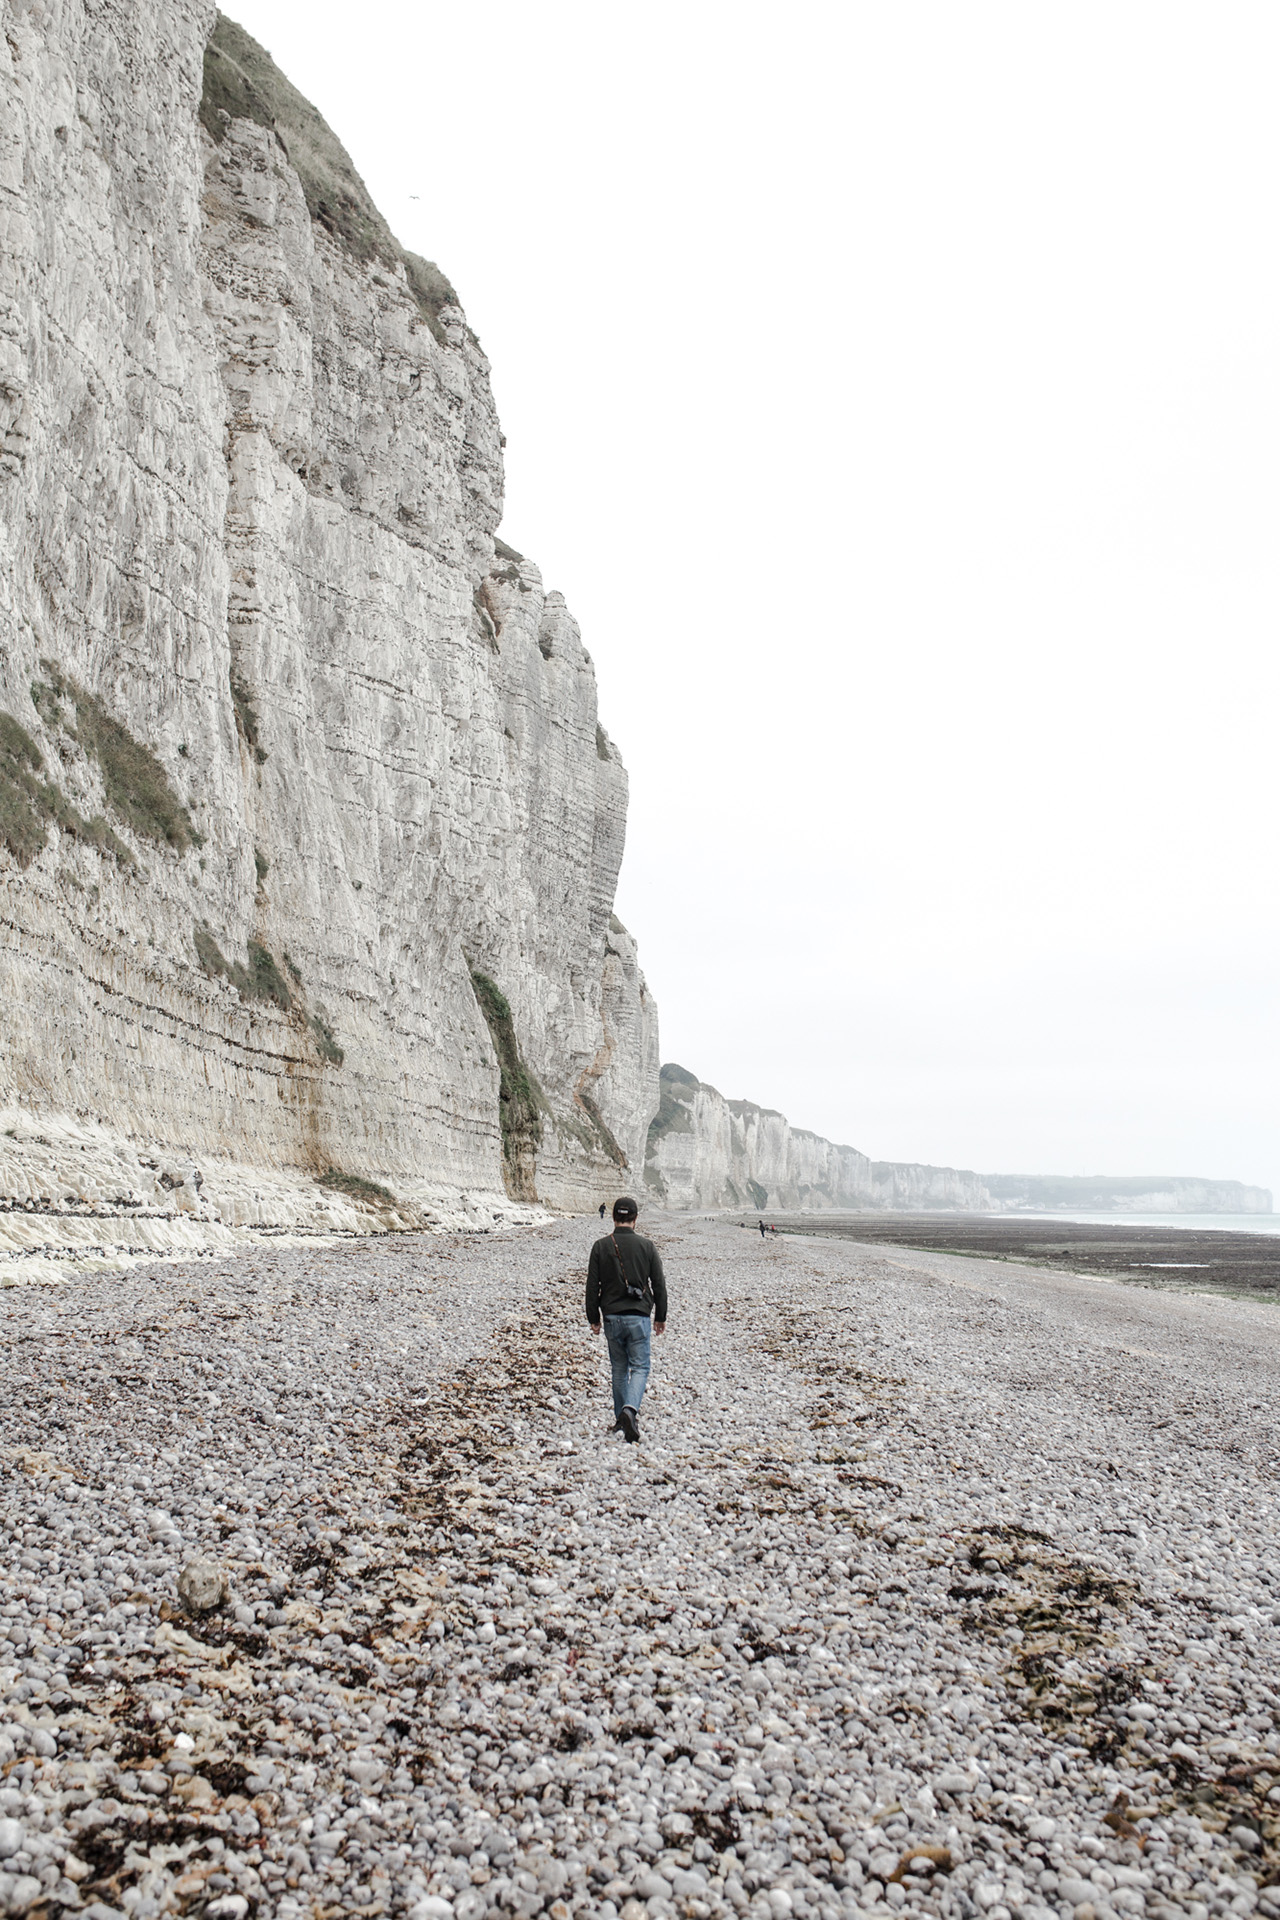 Along the cliff - searching fossils